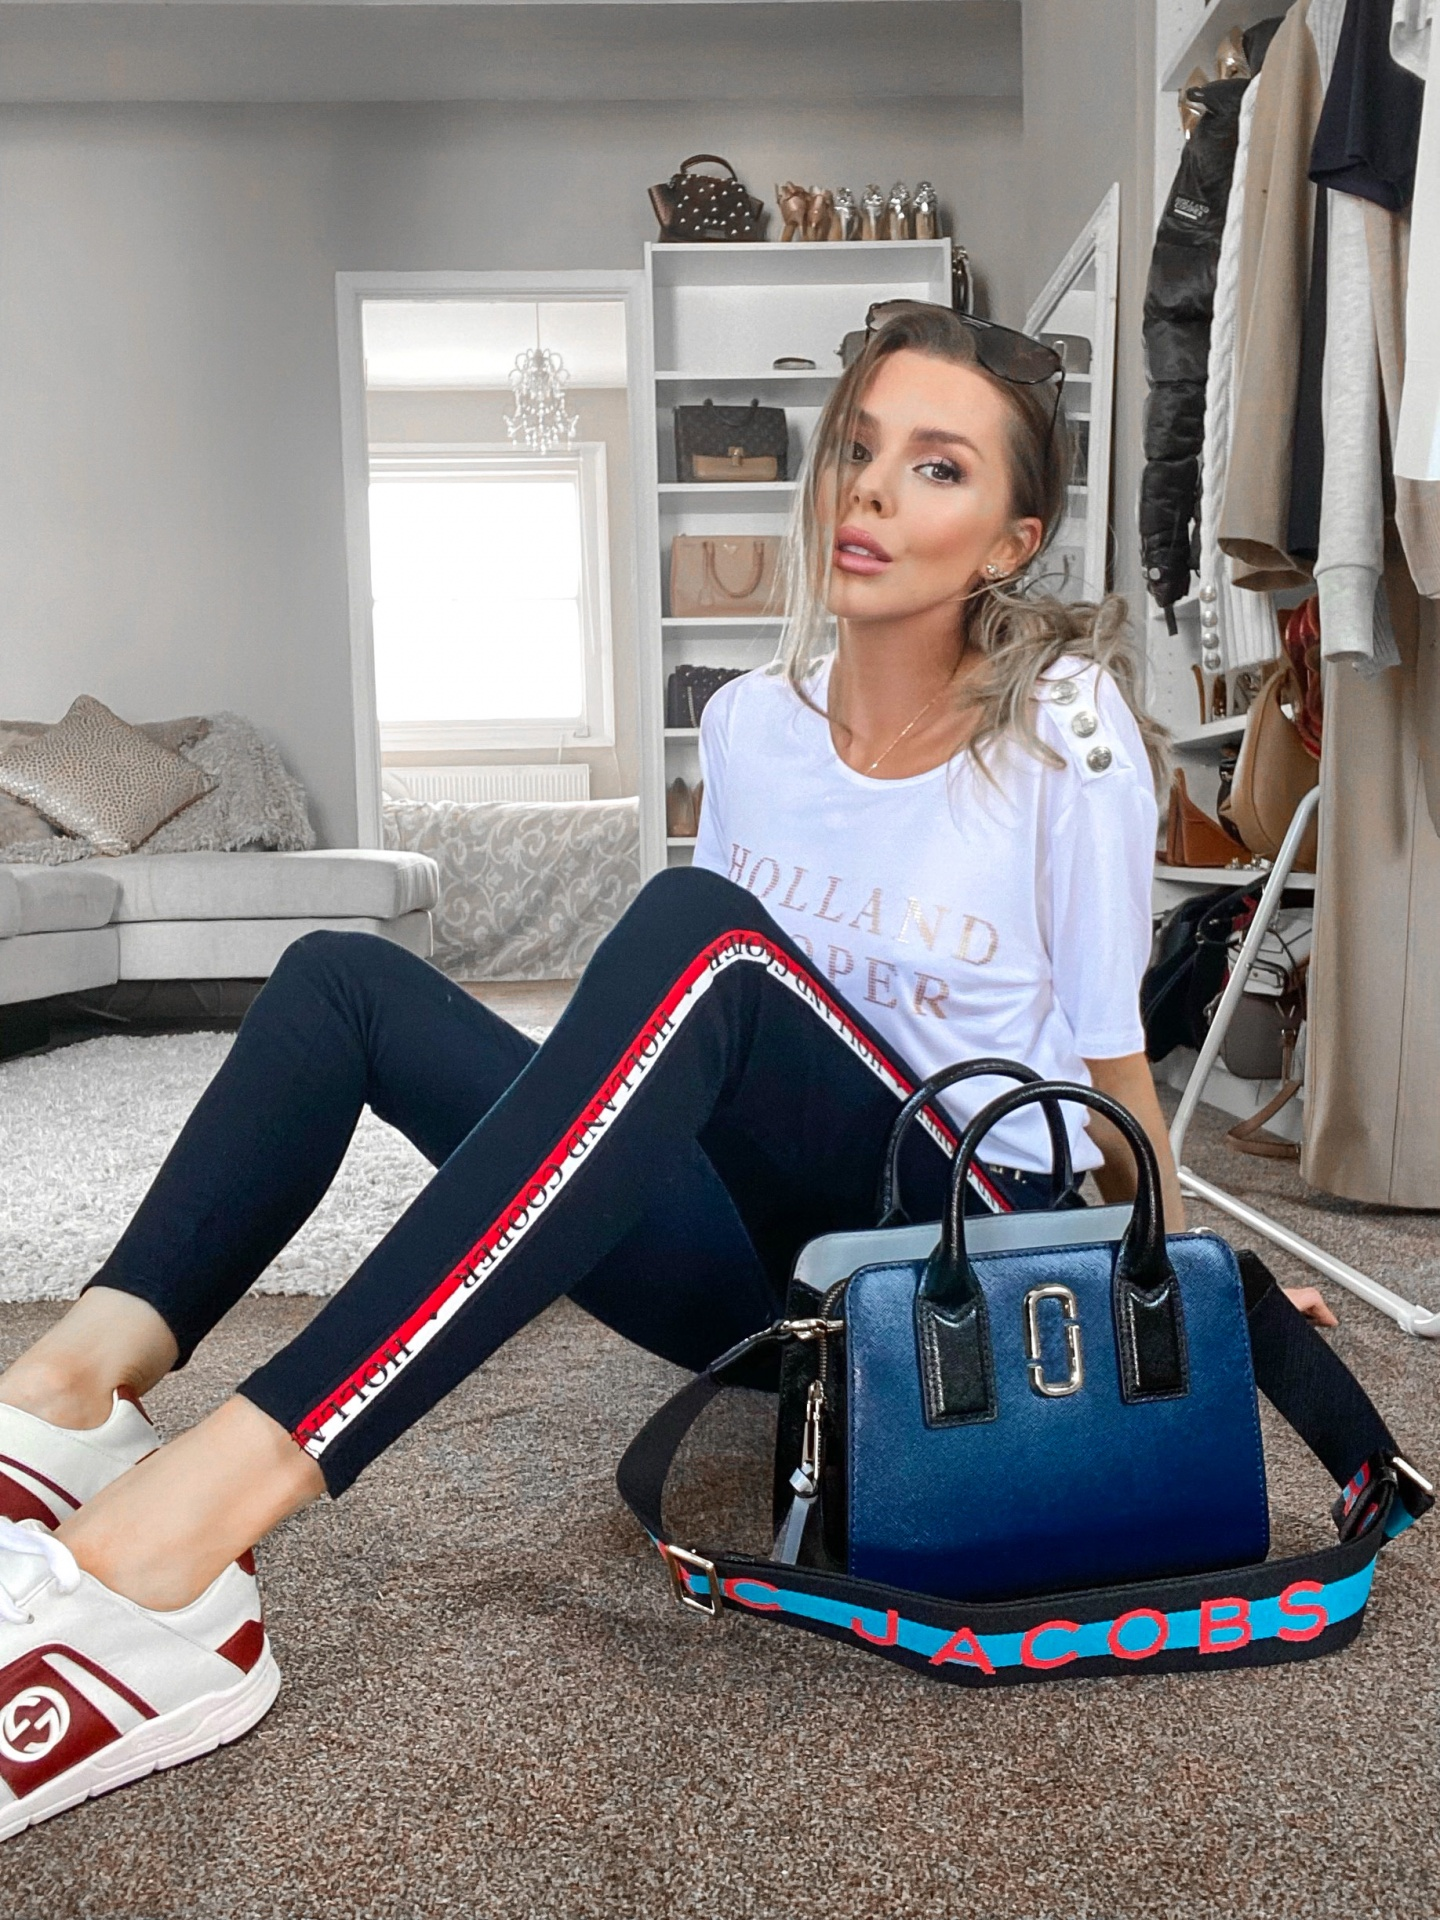 laura blair, fashion blogger uk, a week in outfits, shop instagram, holland cooper, marc jacobs, marc jacobs bag, my bag online